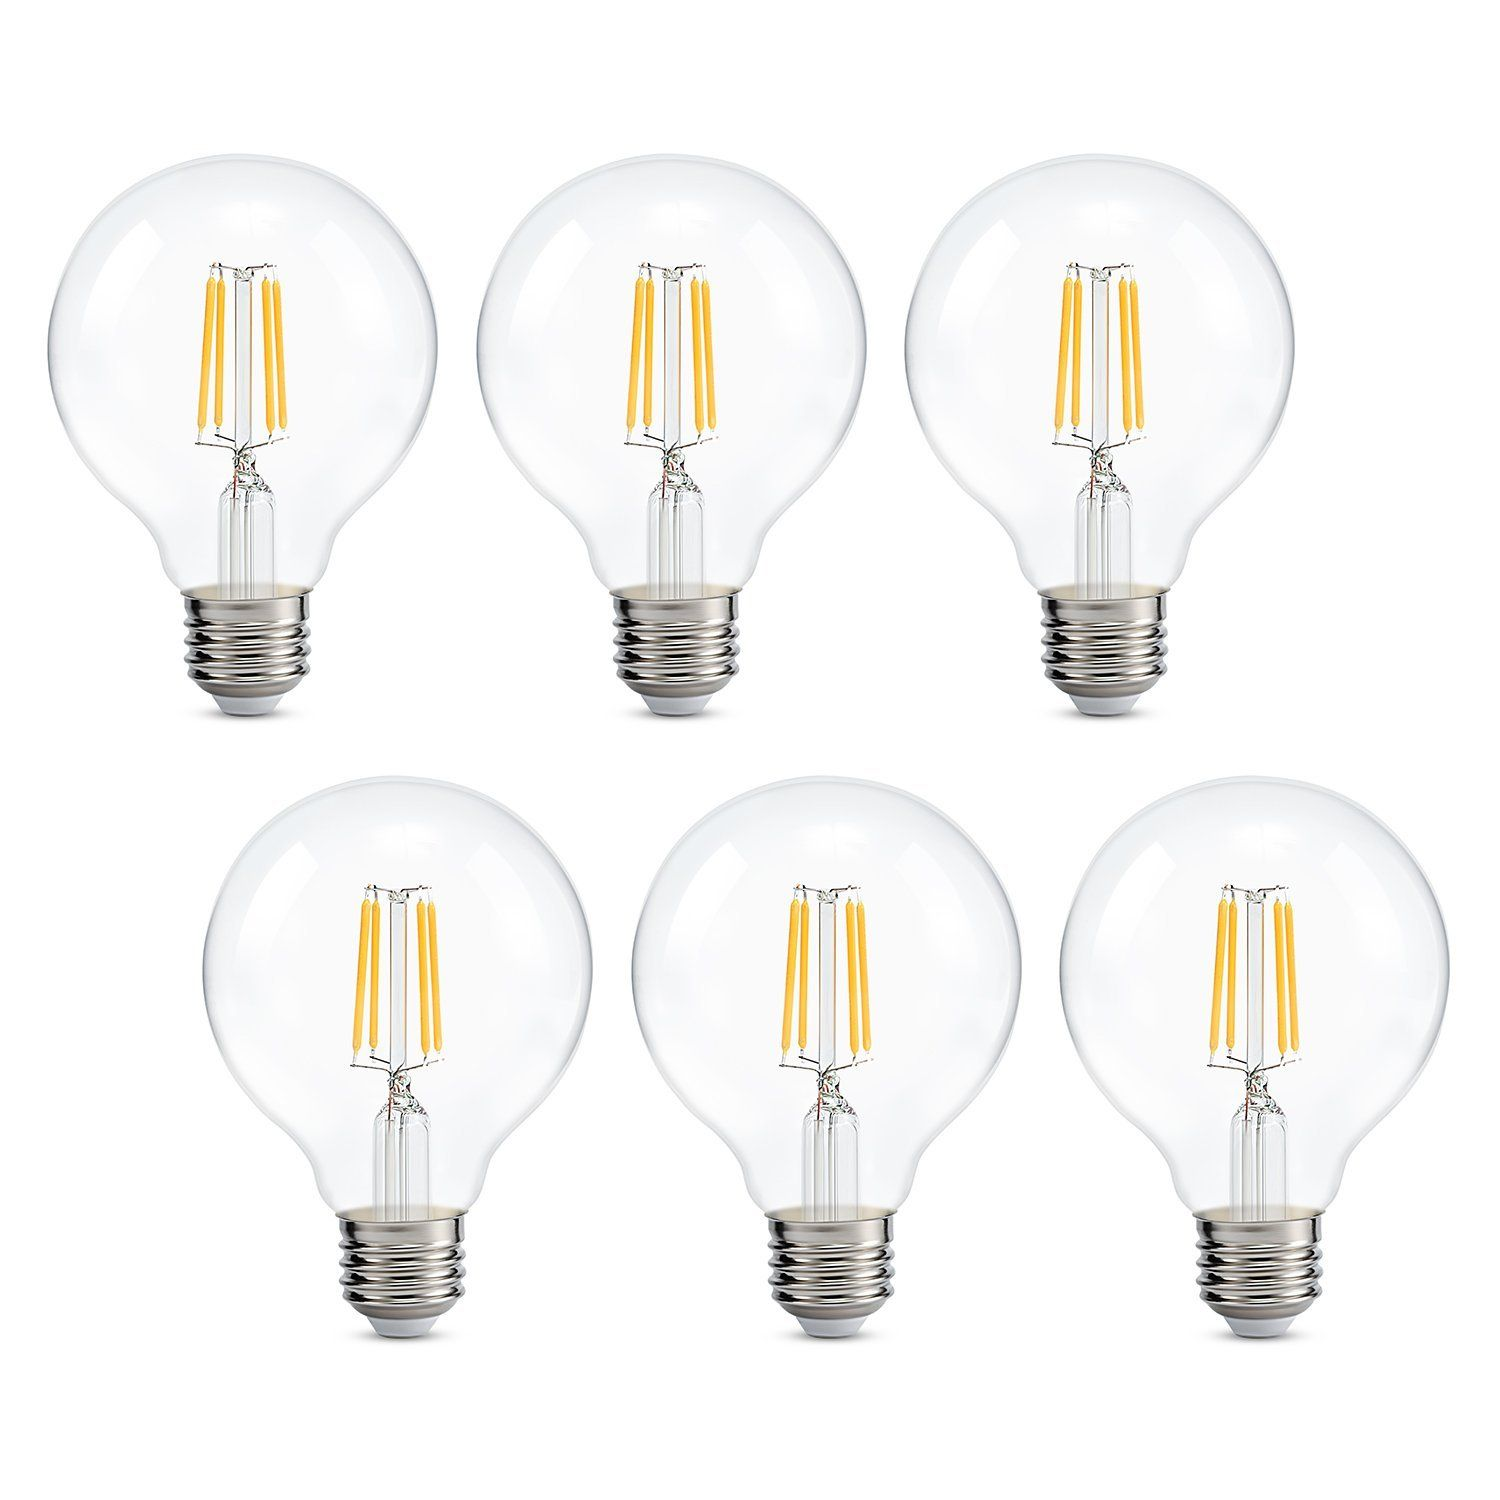 Dimmable Edison Led Globe Light Bulb G25 Warm White K